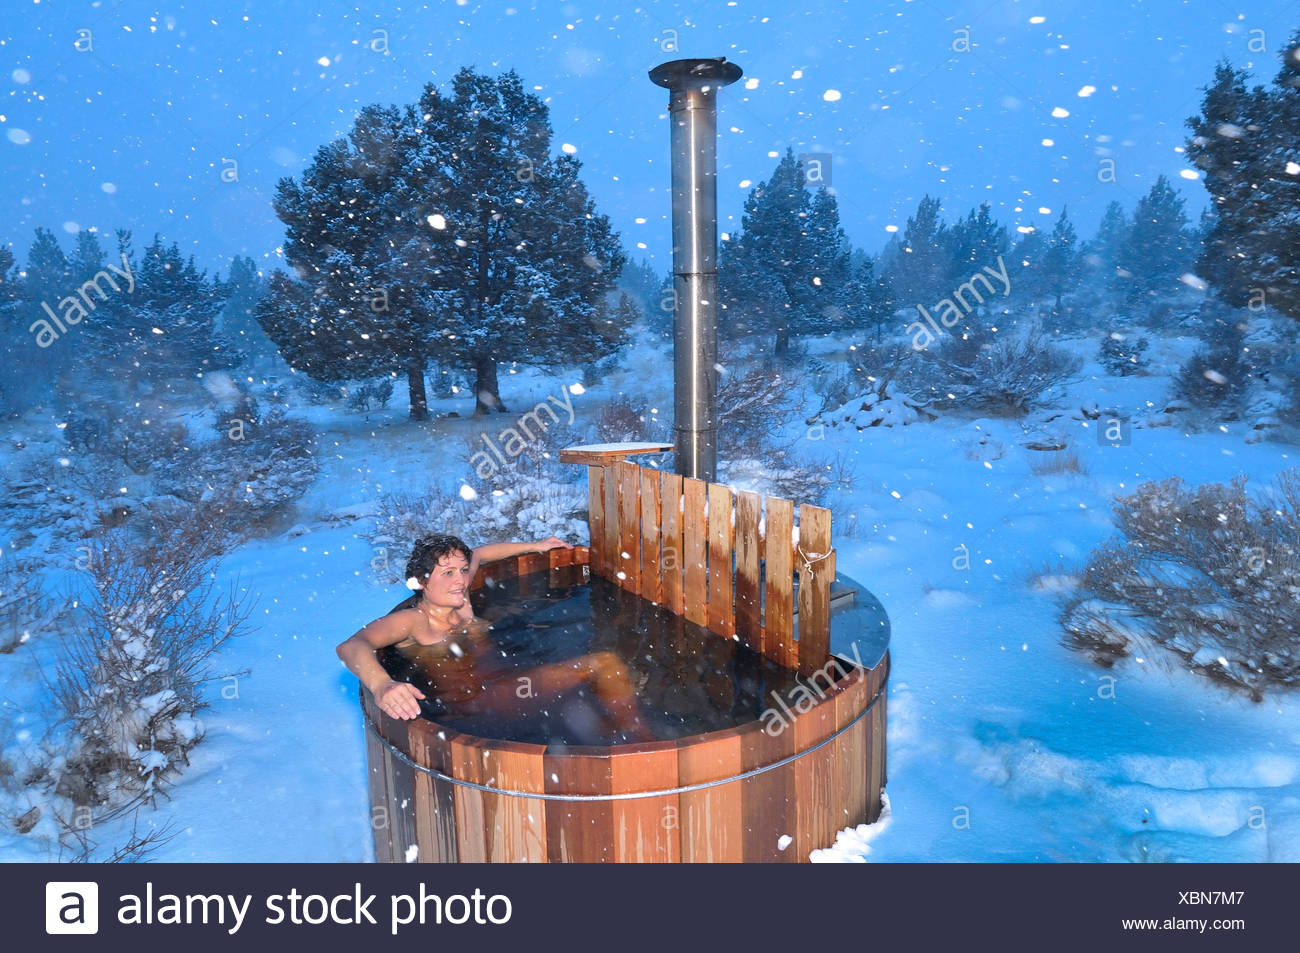 Hot Tub Snow Stock Photos & Hot Tub Snow Stock Images - Alamy